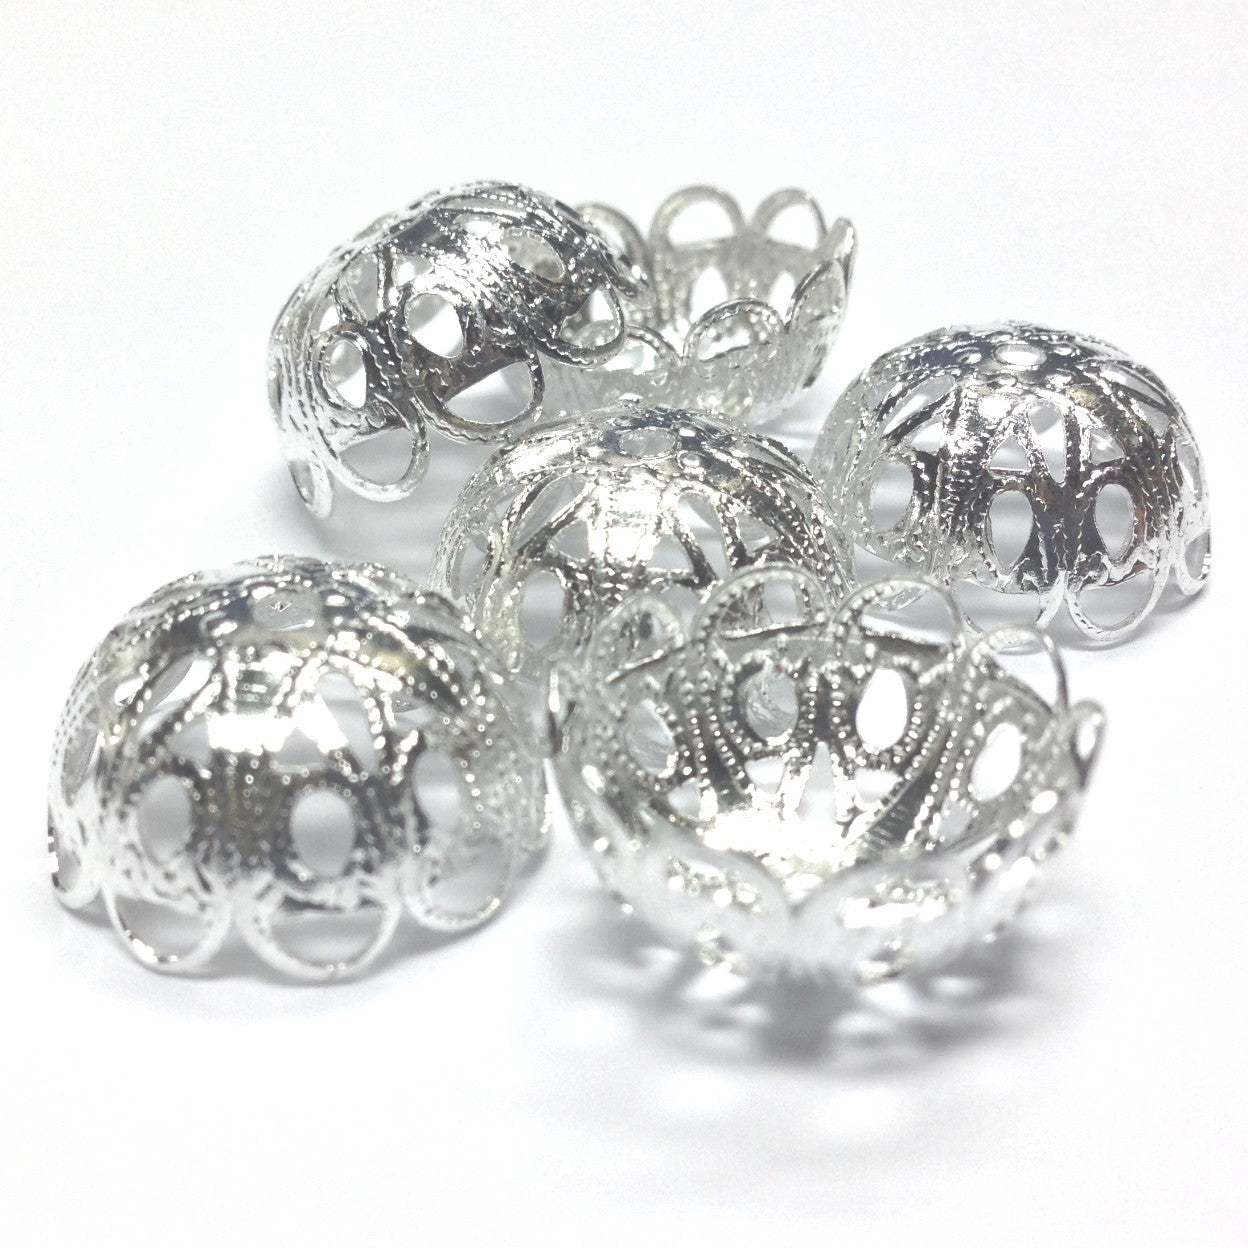 17X8.5MM Silvertone Filigree Cap (36 pieces)